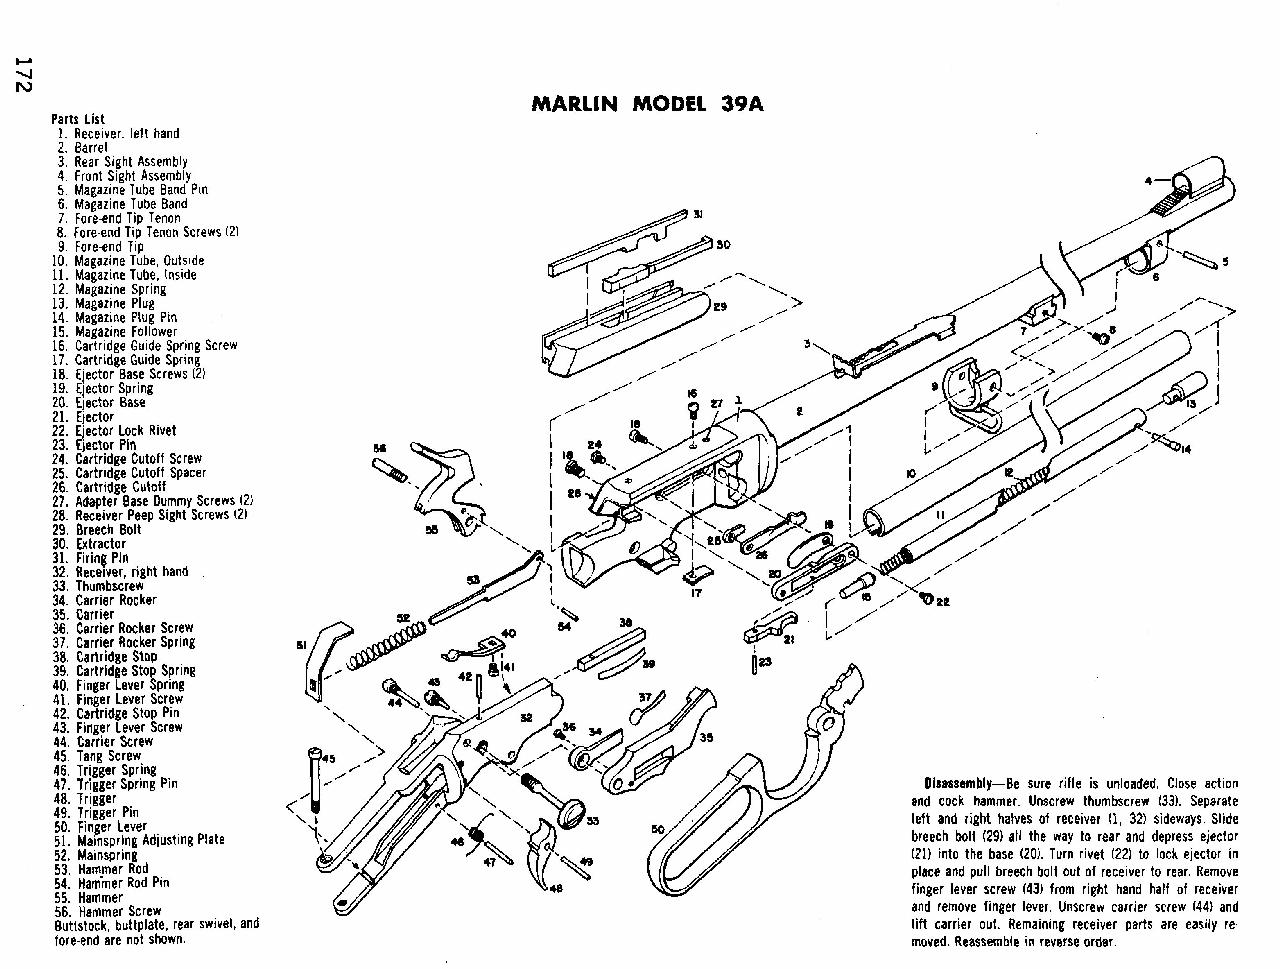 Exploded views of leverguns on savage model 99, mossberg 500 schematic, mauser 98 schematic, savage 24 schematic, remington nylon 76, remington model 10 schematic, winchester rifle, smith & wesson m&p schematic, marlin firearms, henry rifle schematic, marlin model golden 39a, savage 99 schematic, winchester model 1894, marlin levermatic, browning blr schematic, winchester model 1892, remington 7600 schematic, springfield model 1873, colt lightning carbine, remington 788 schematic, marlin model 60, winchester 1894 schematic, browning blr, s&w model 60 schematic, shotgun schematic, marlin model 1894, ruger gp100 schematic, winchester model 94 schematic, savage model 110, marlin camp carbine, henry rifle, winchester model 71, marlin model 795, remington 870 schematic, ruger 10/22 schematic, mossberg model 464, mossberg 930 schematic, franchi schematic, remington model 11 schematic,